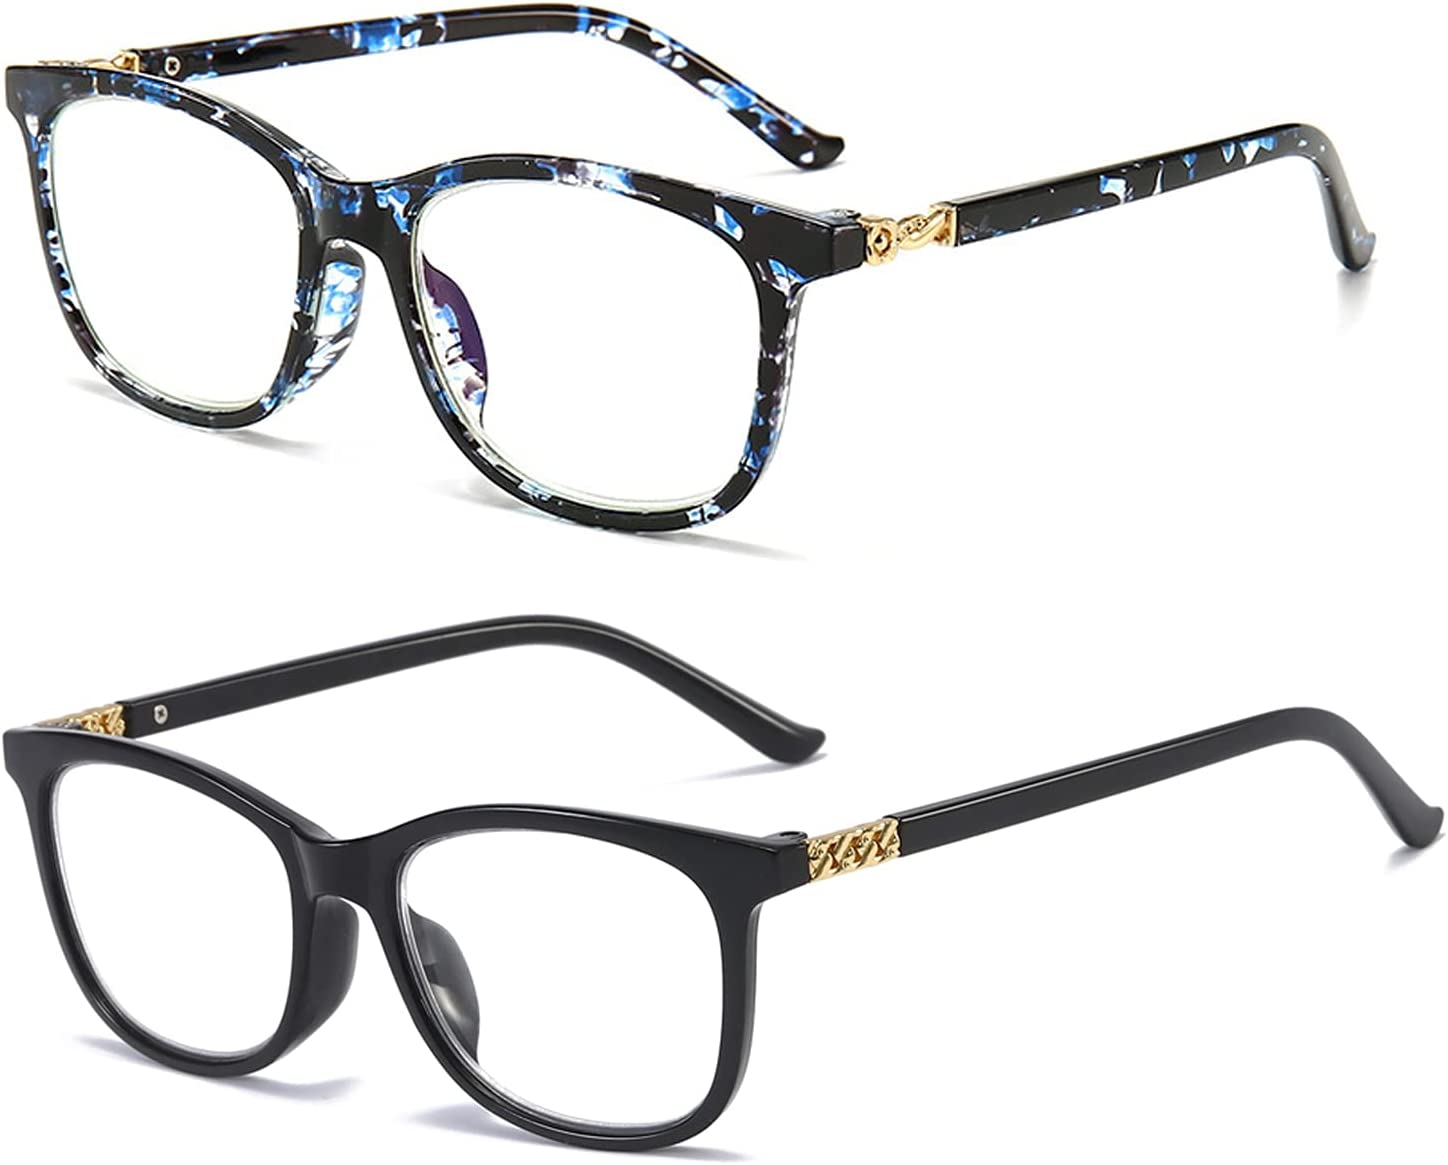 Reading Glasses Women Blue Max 48% OFF Light Blocking Online limited product x Computer Reader 3.0